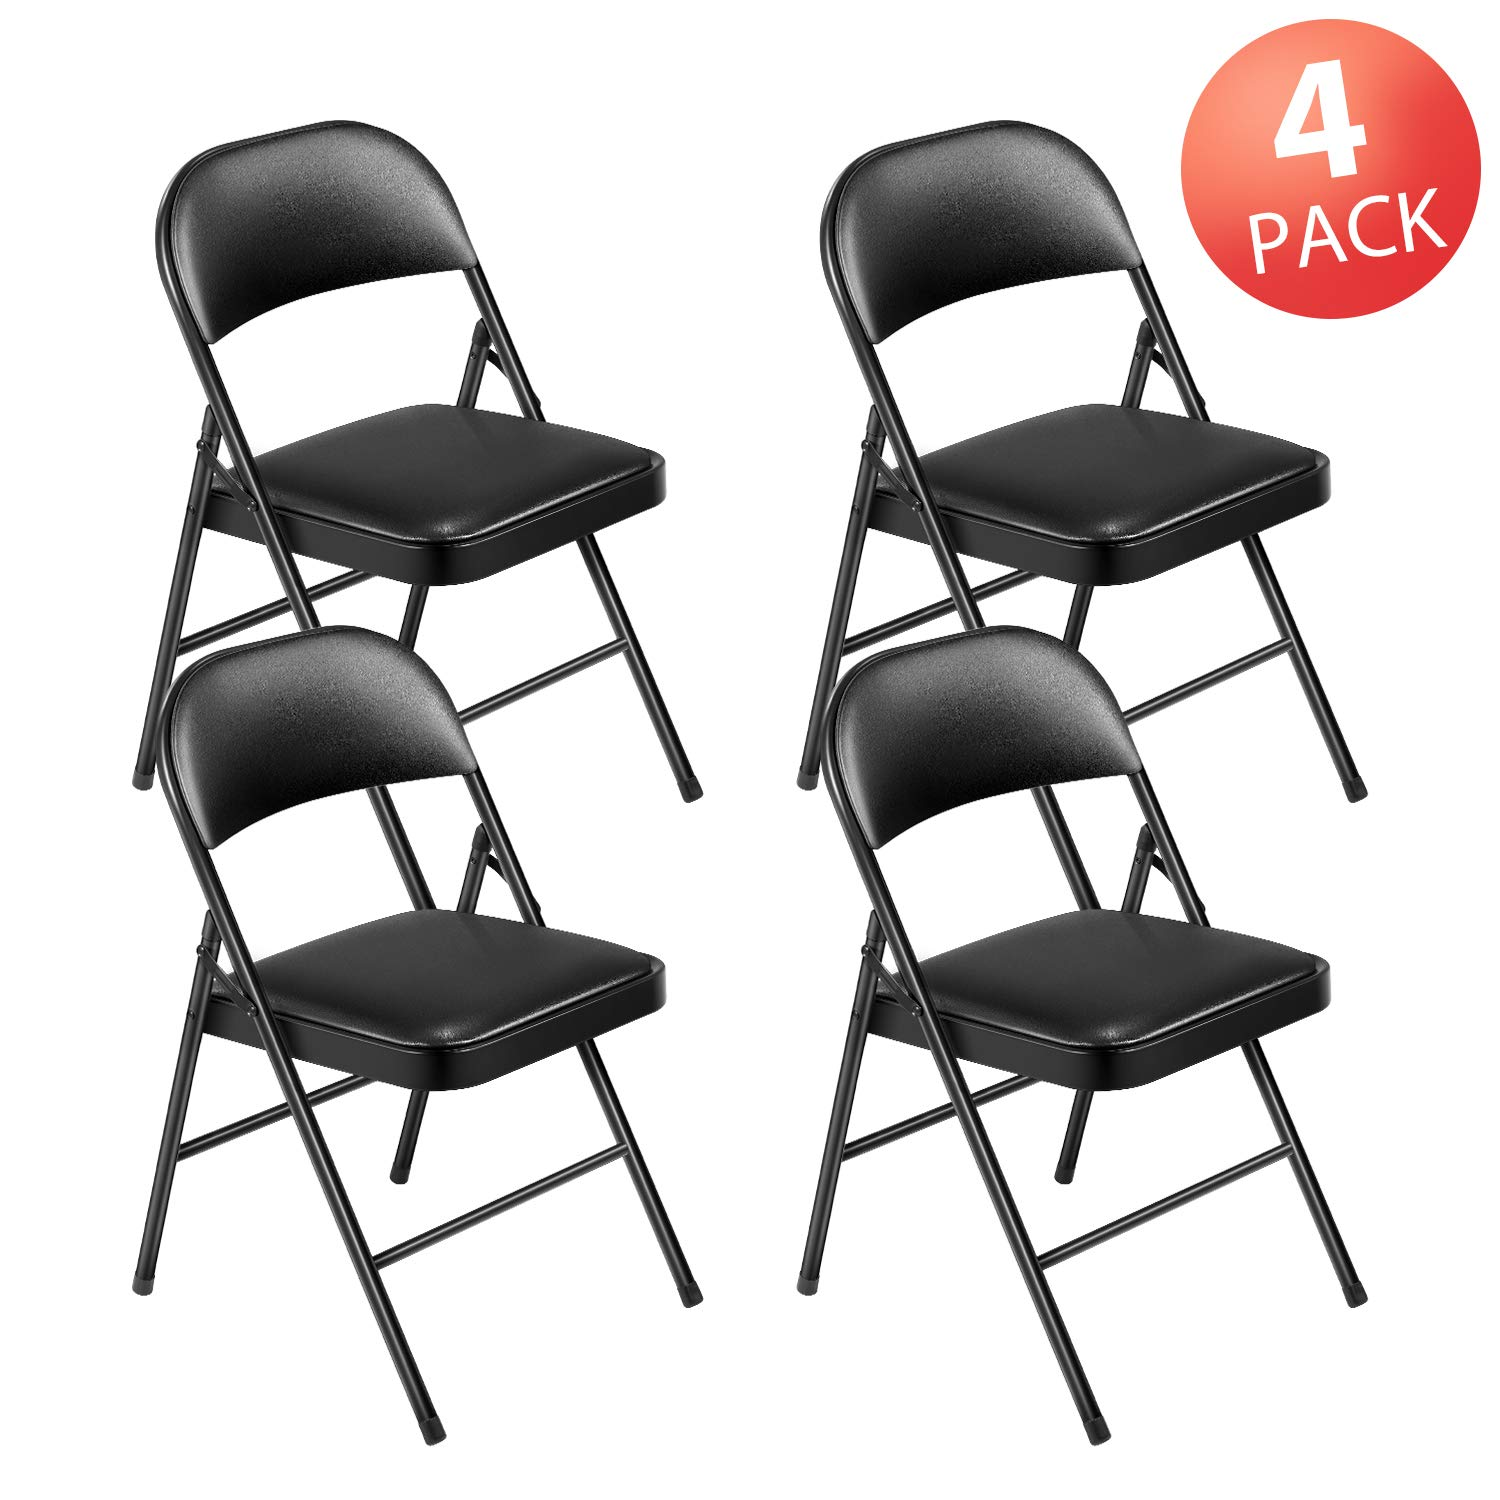 Kealive Folding Chair Steel Upholstered Padded Seat and Back 4 Pack Vinyl Padded Folding Chairs Stacked Double Hinged 480 lbs Weight Capacity, 4 Padded Dining Chairs Metal Frame, Black by kealive